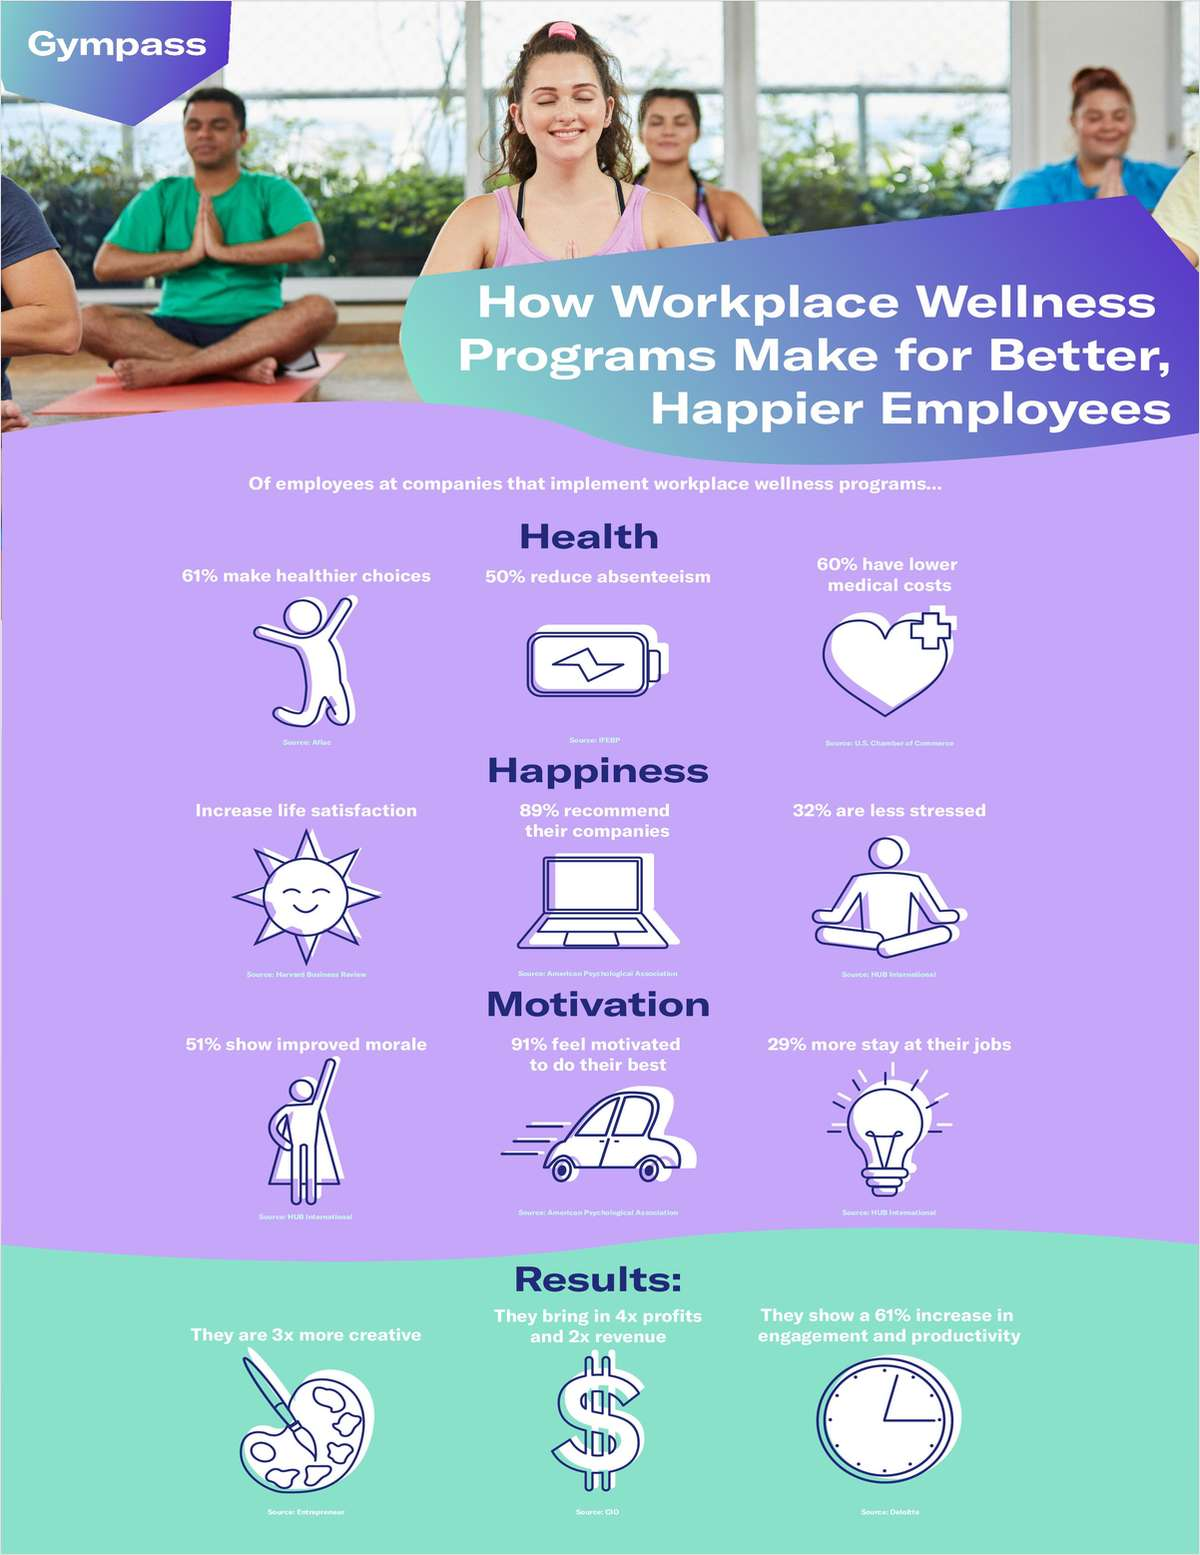 How Workplace Wellness Programs Make for Happier Employees